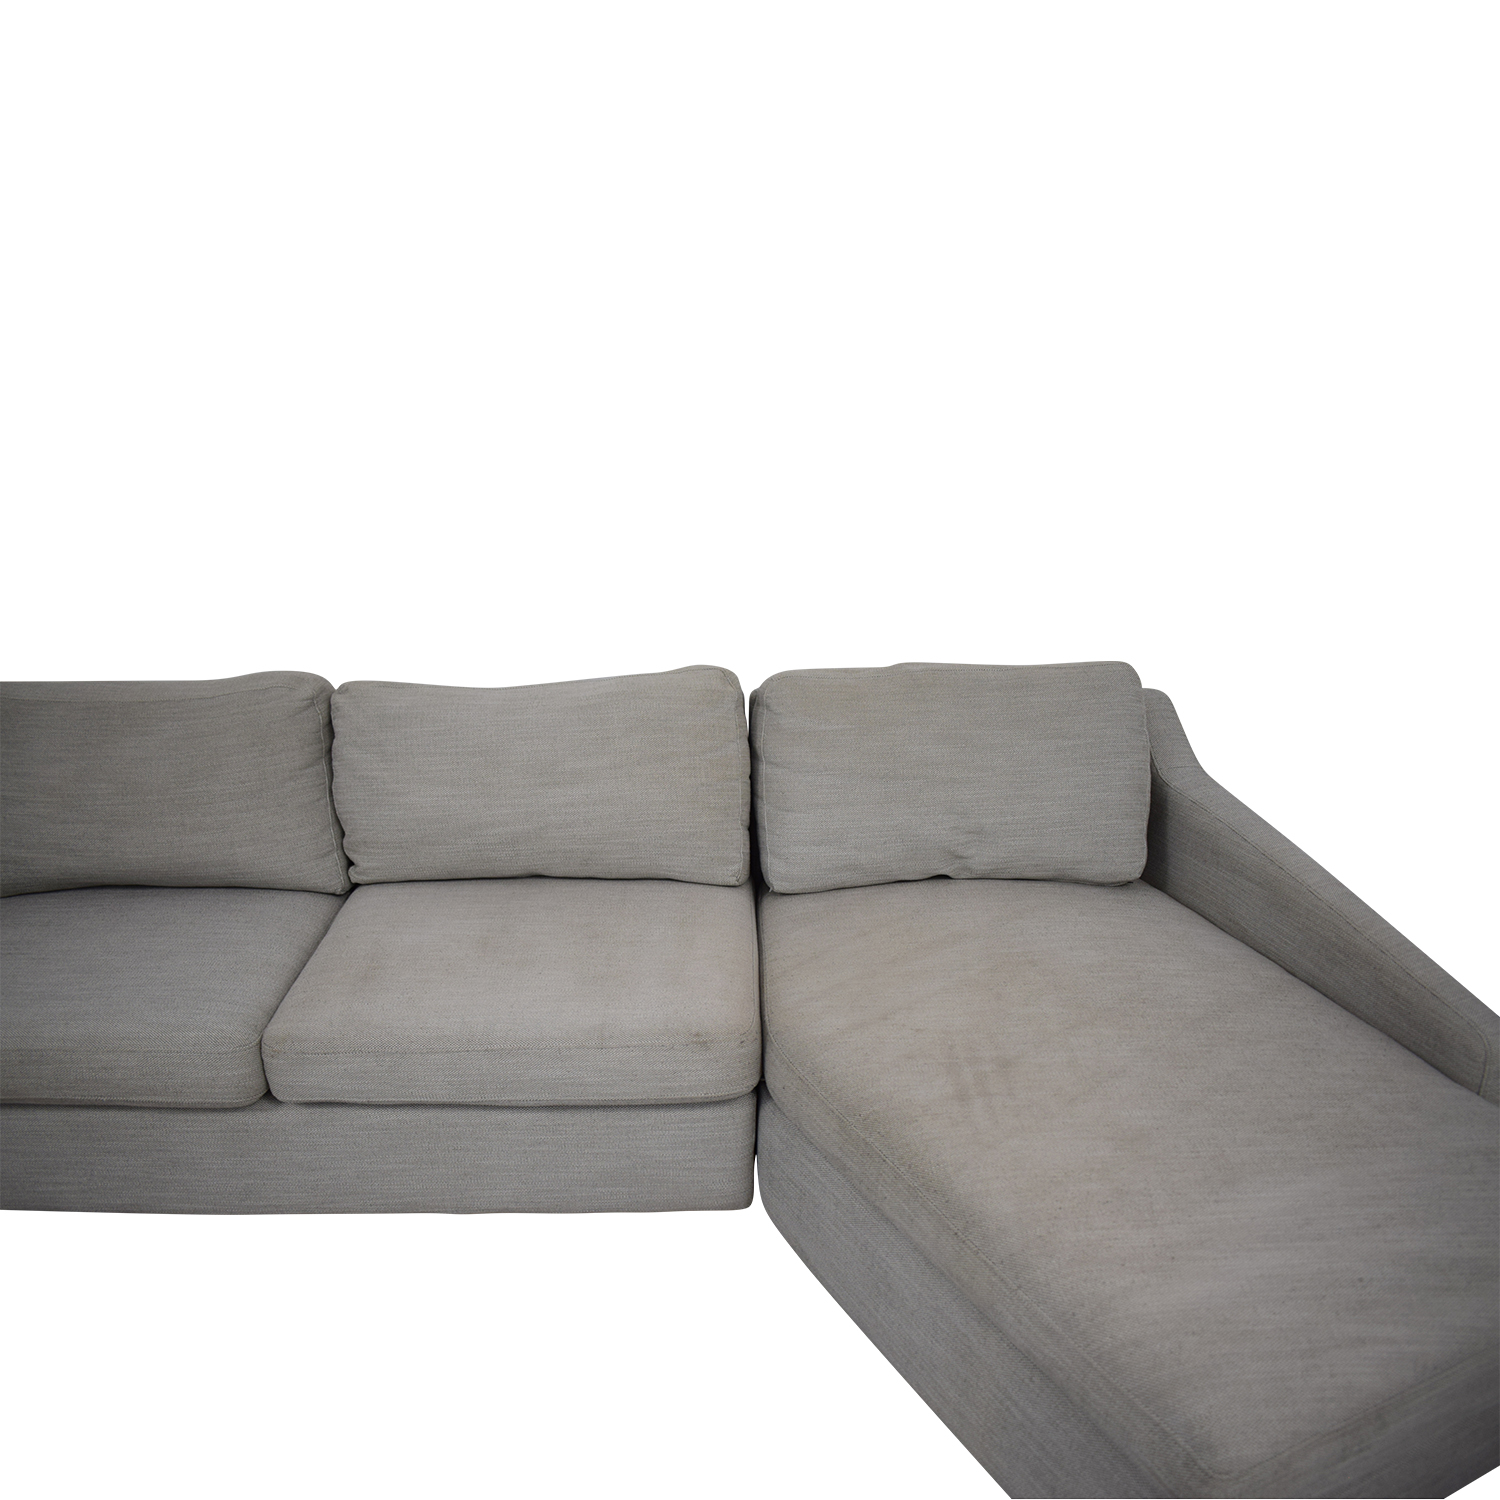 West Elm West Elm Trapez Chaise Sectional Sofa Sofas